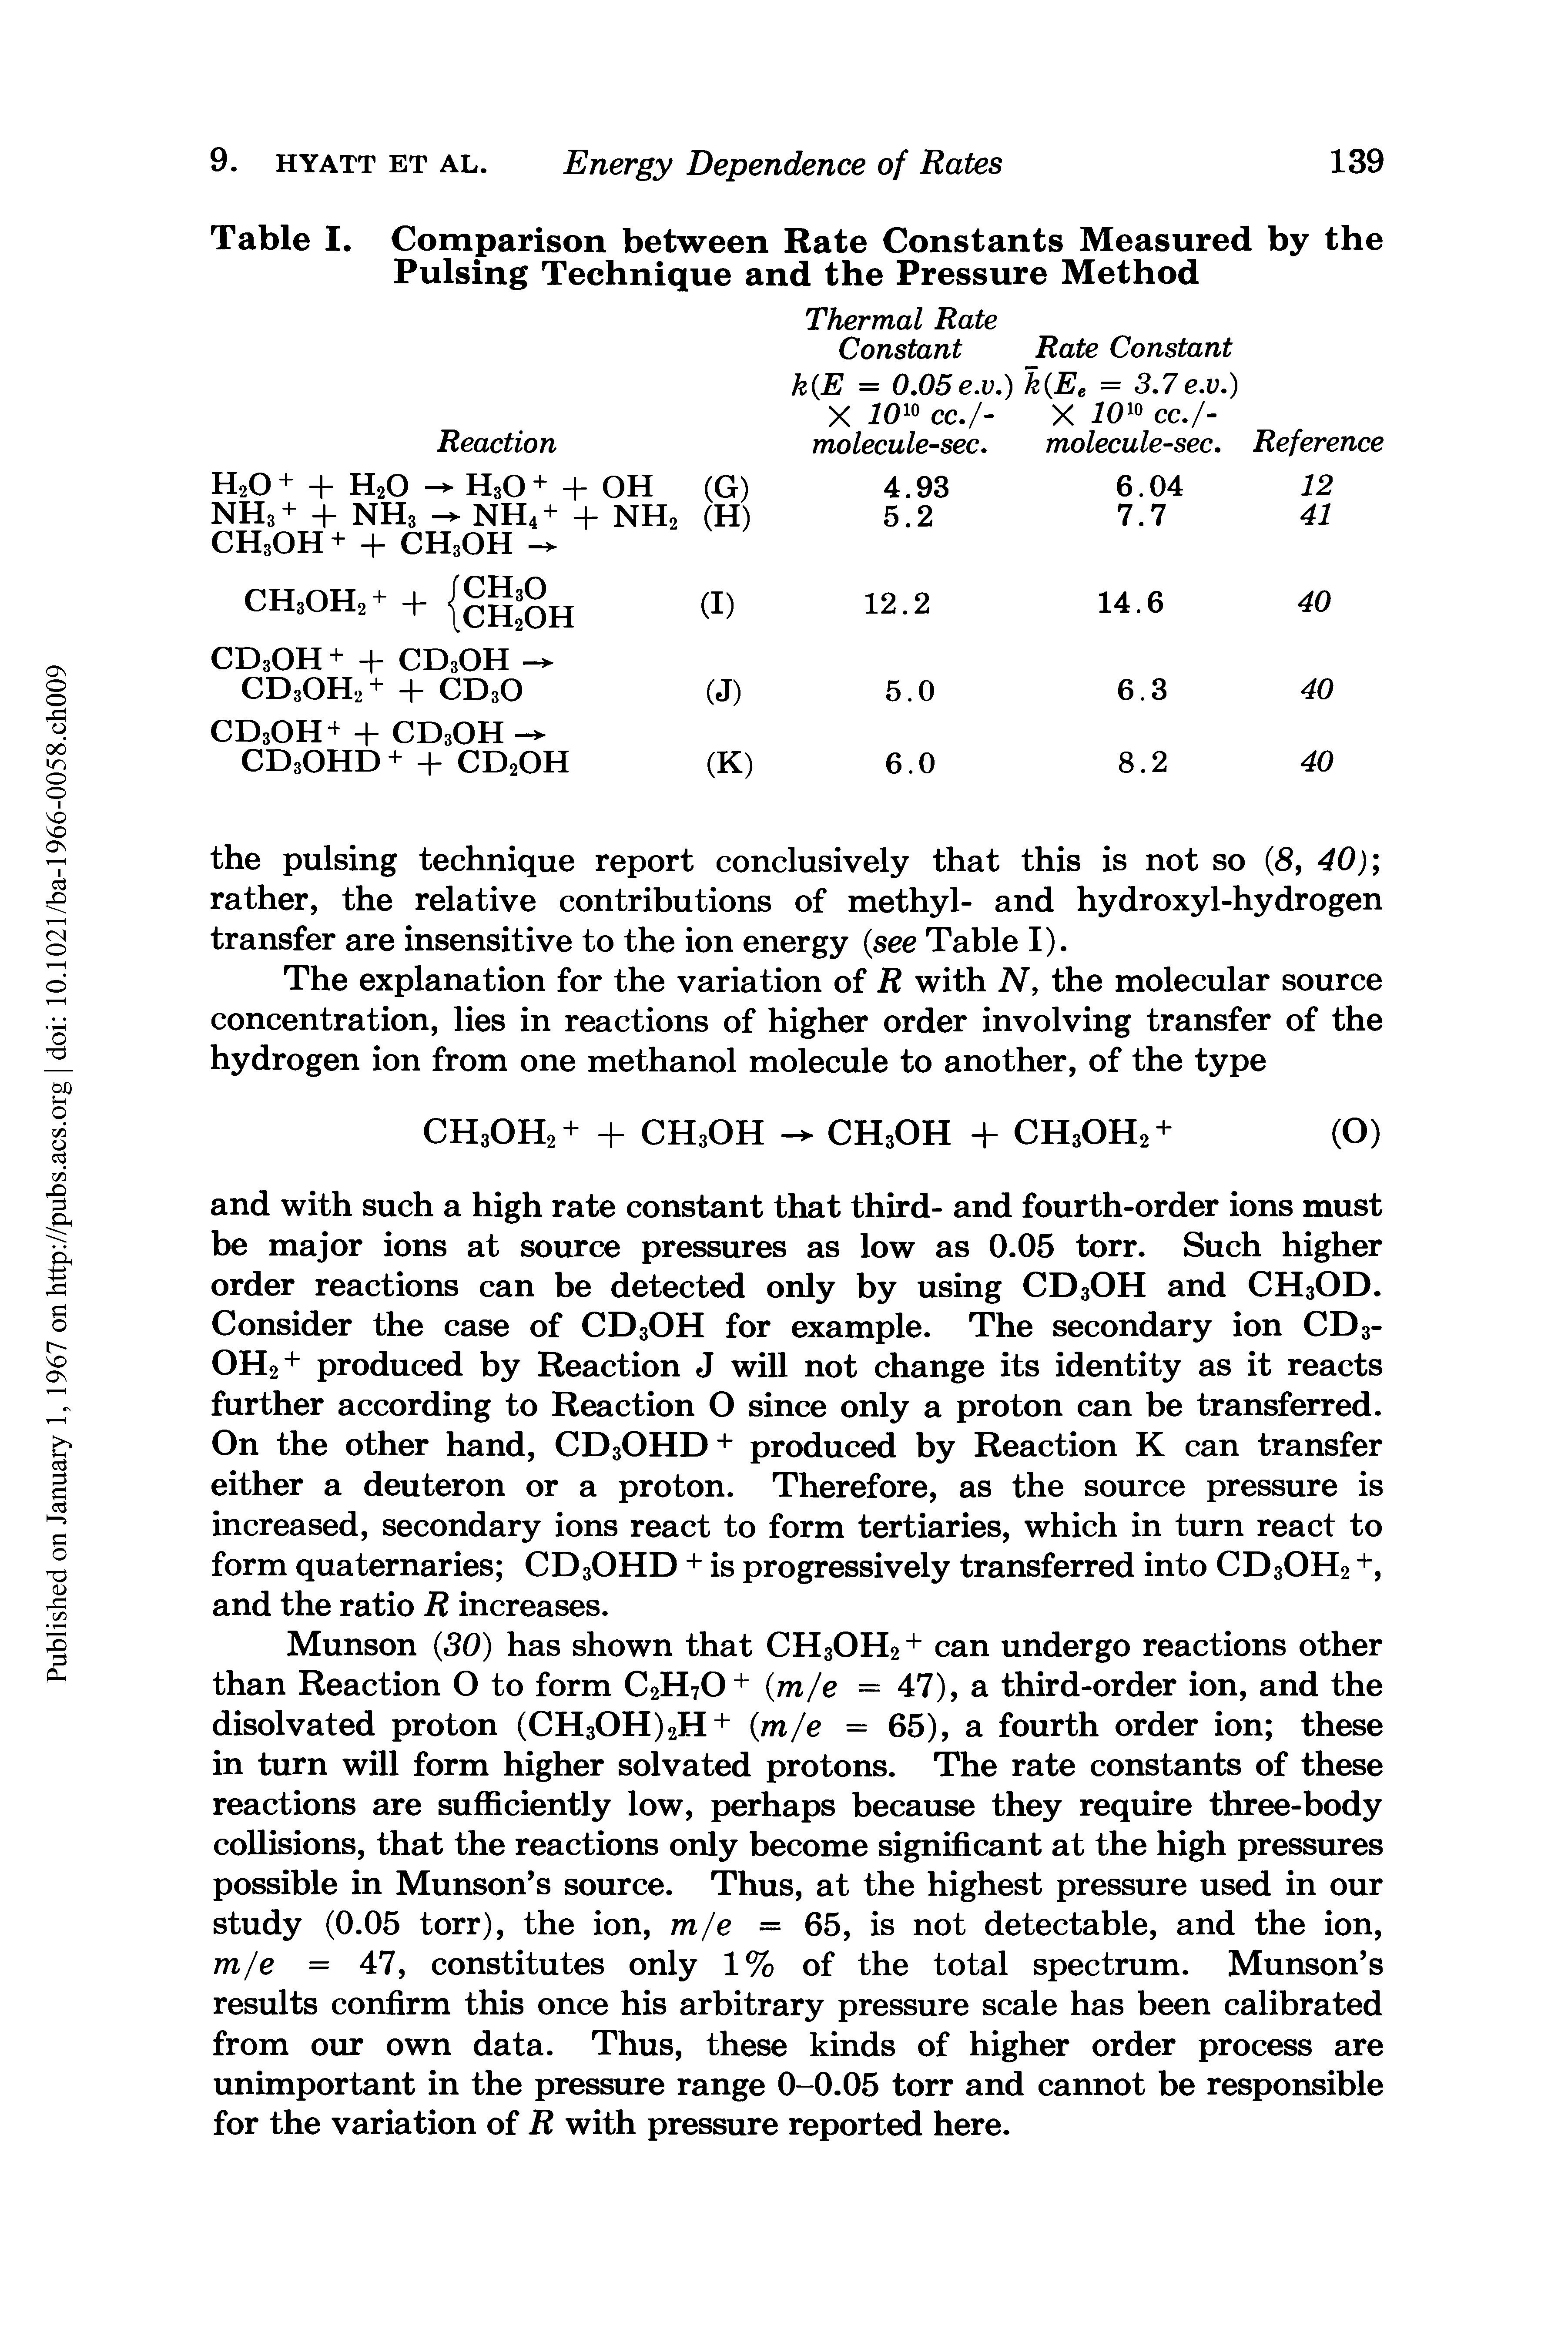 "Table I. <a href=""/info/comparison_between"">Comparison between</a> Rate Constants Measured by the <a href=""/info/pulse_techniques"">Pulsing Technique</a> and the Pressure Method"